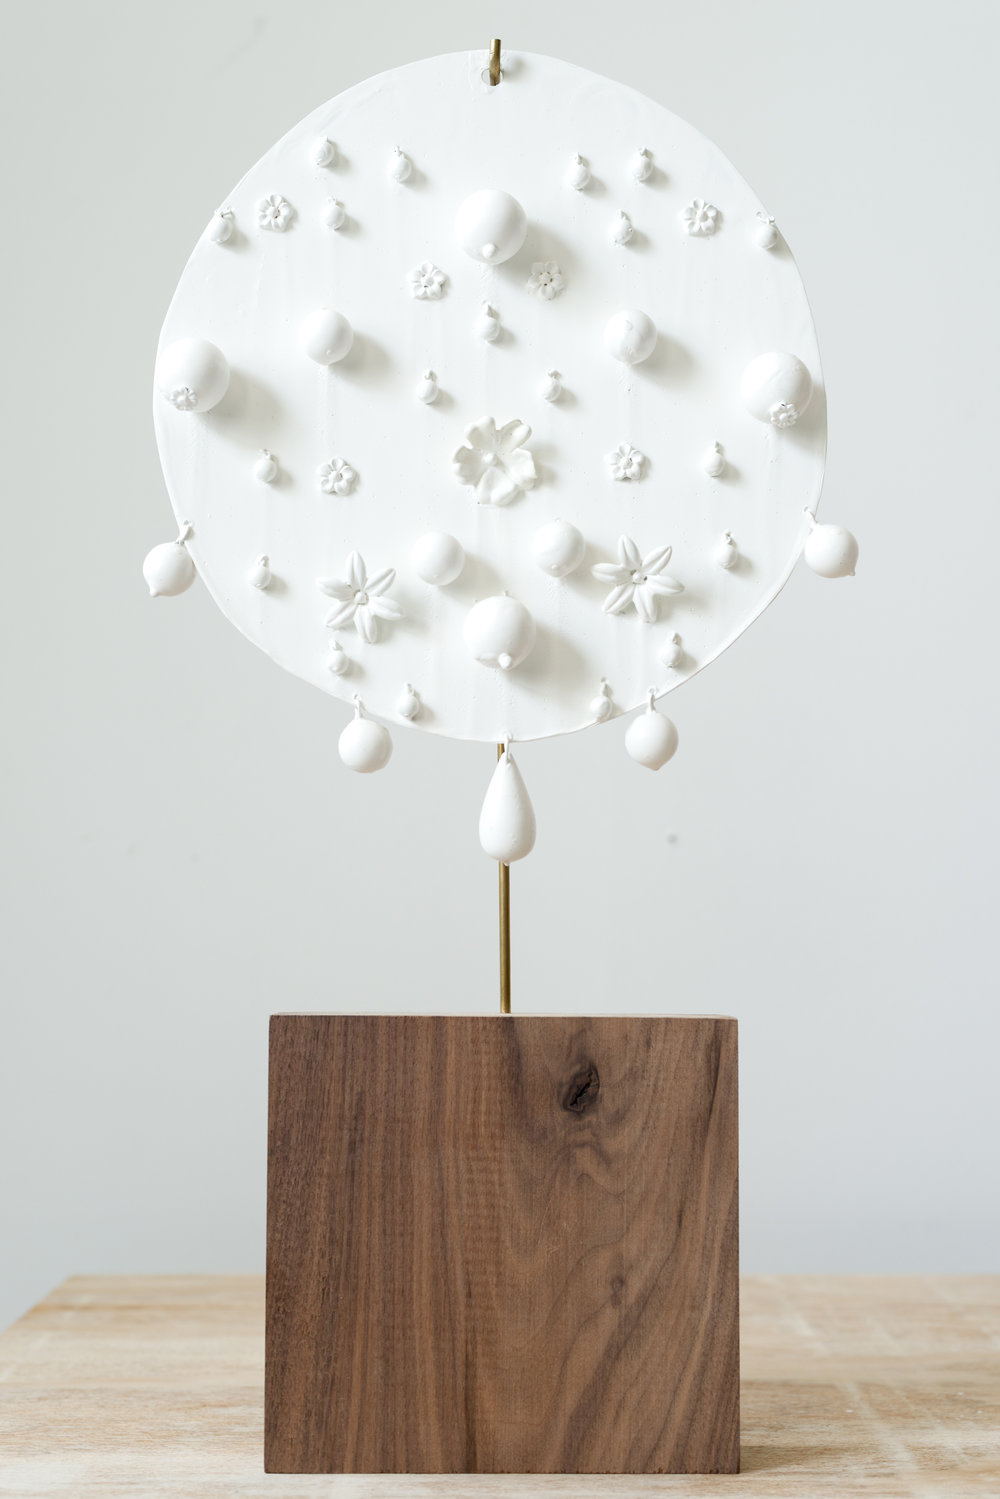 Disk V,  2012 Acrylic medium coated aluminum, Lucite, brass, wood 20 x 10 x 2 inches